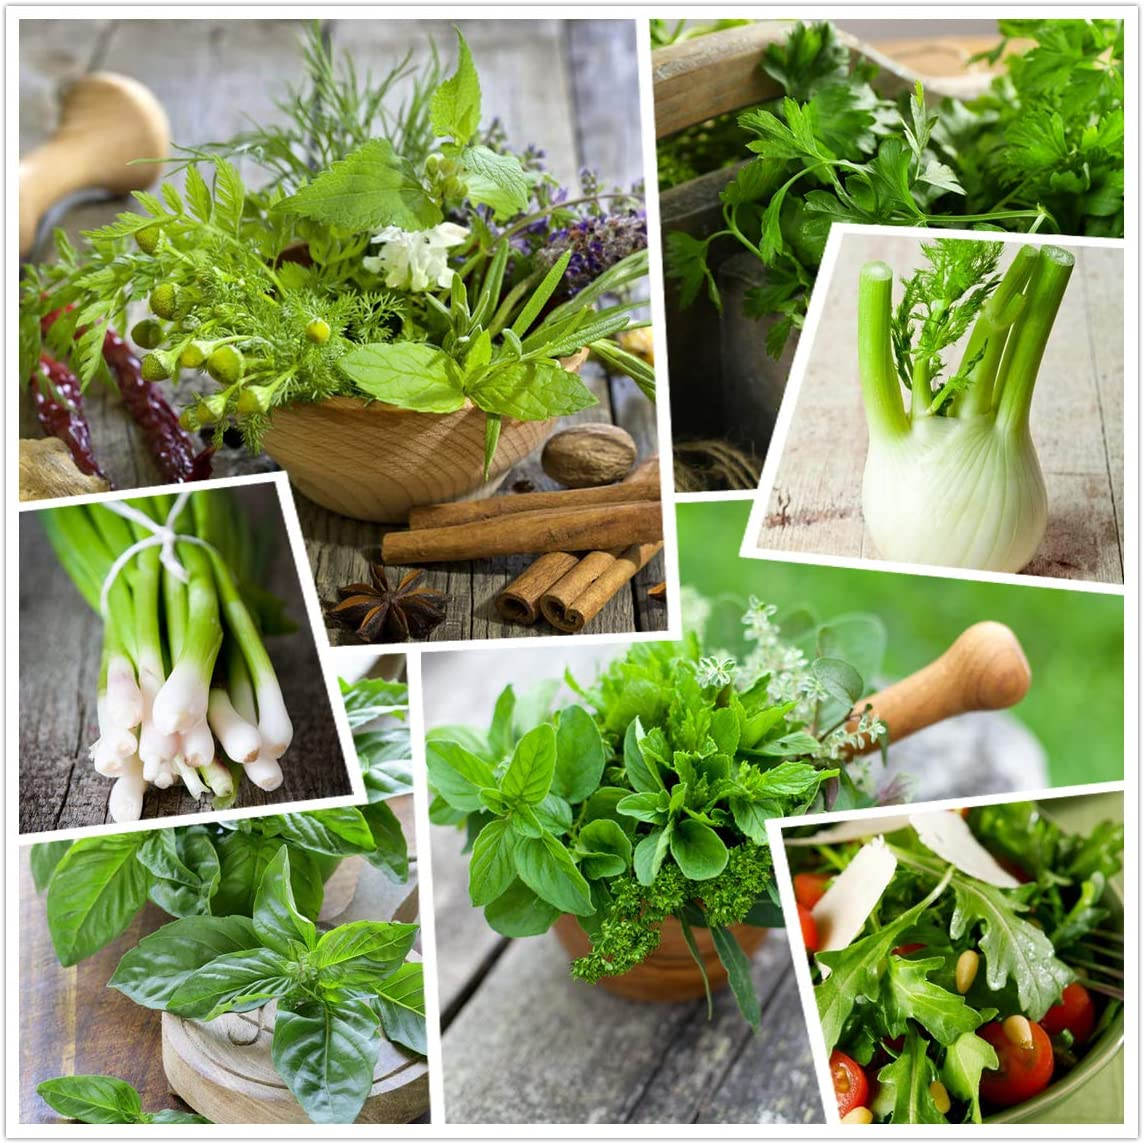 20 Culinary Herb Seed Vault Heirloom Vegetables seeds - Plus Seeds for Planting for Indoor or Outdoor Herbs Garden,Customizable